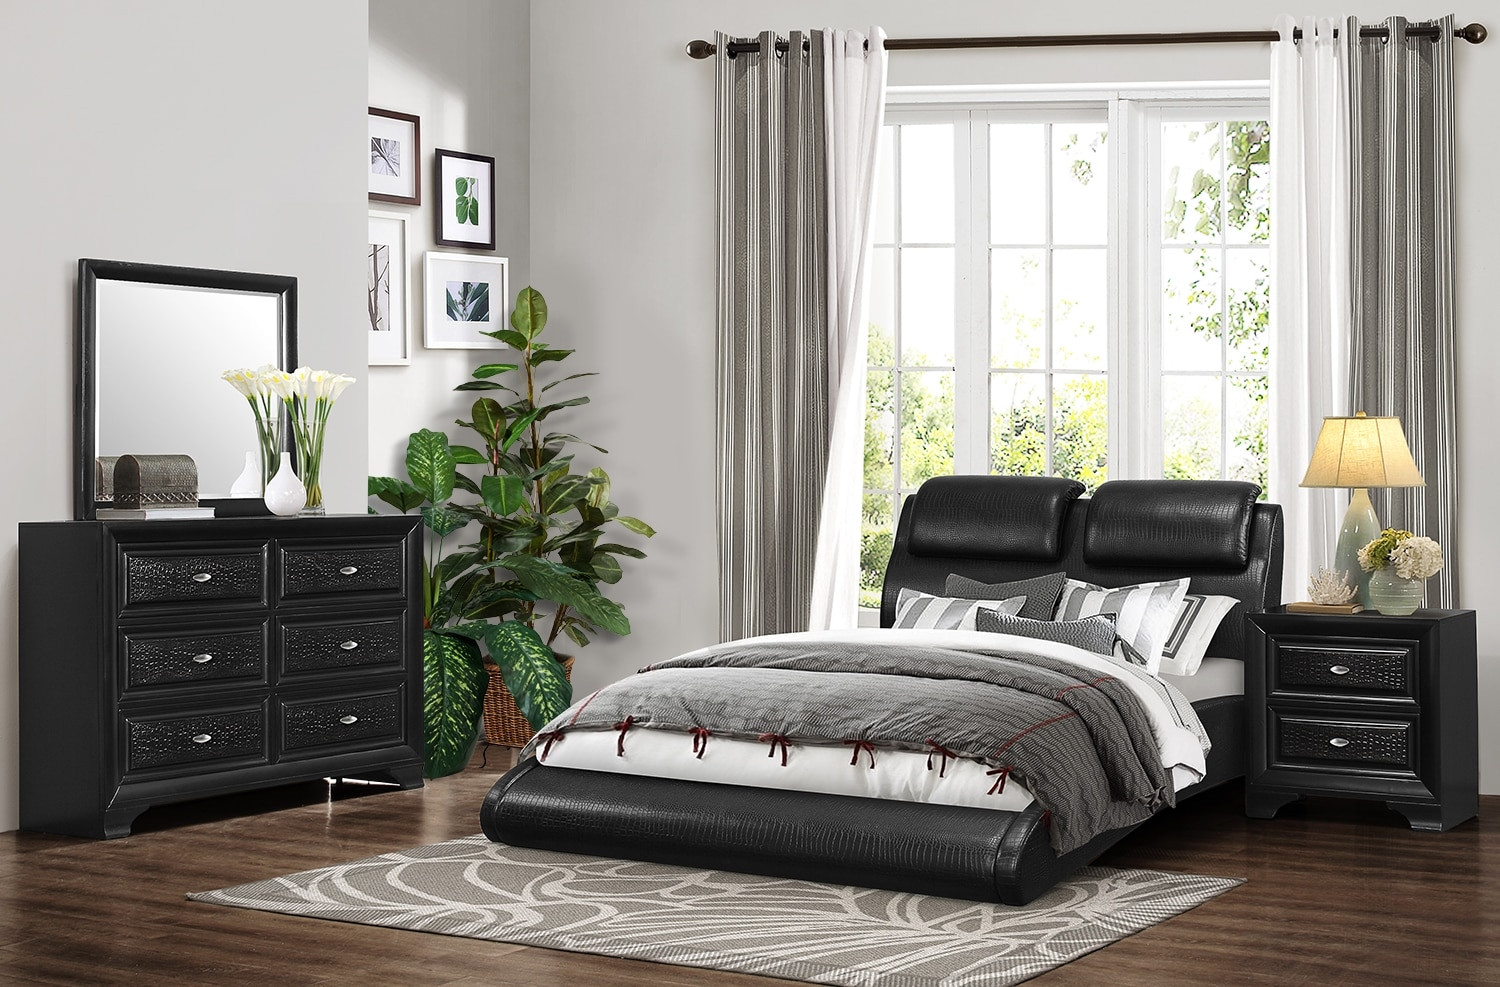 Roma 5-Piece Queen Bedroom Set - Black